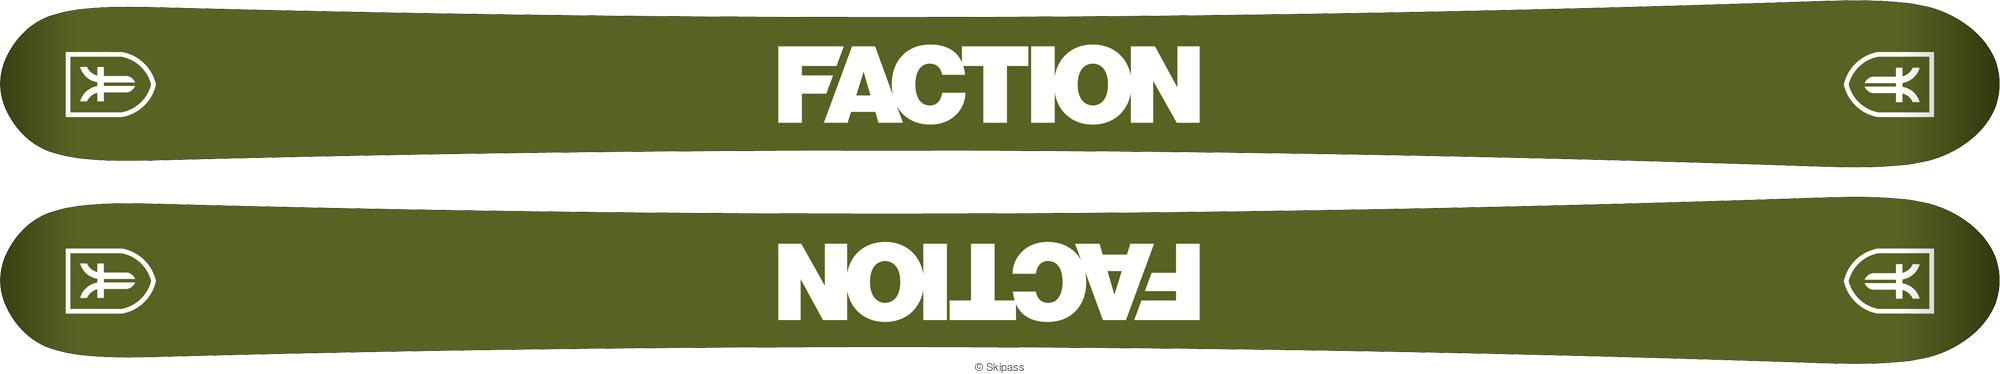 Faction Candide 5.0